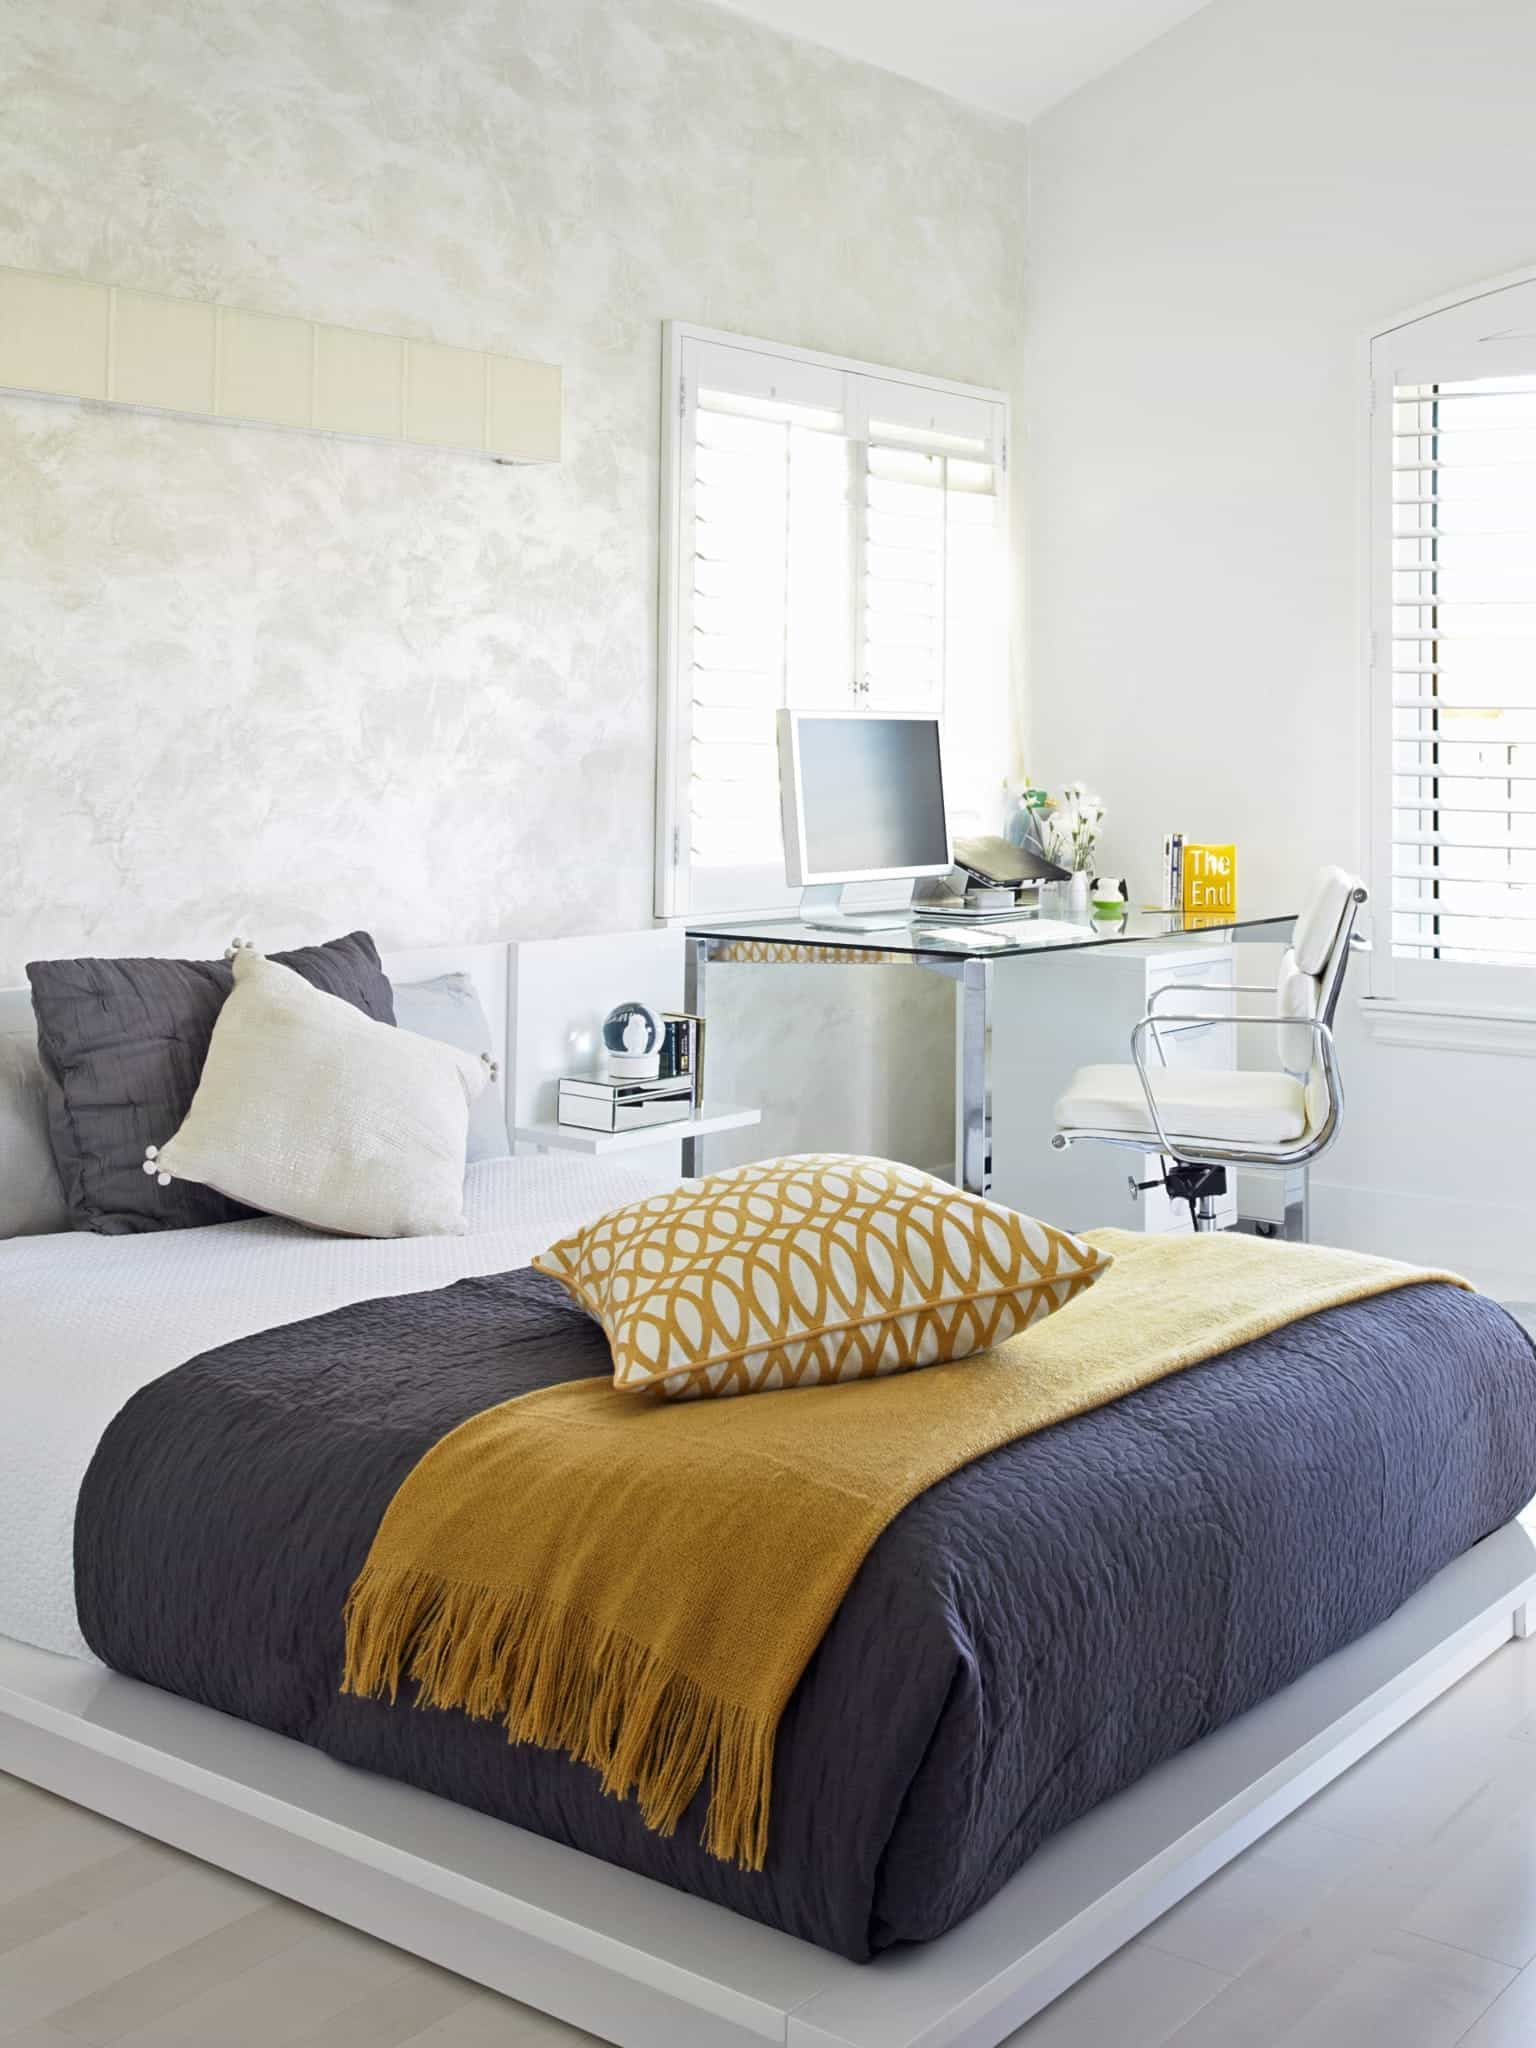 Minimalist Apartment Bedroom Decor Combo With Modern Workspace (Image 19 of 28)